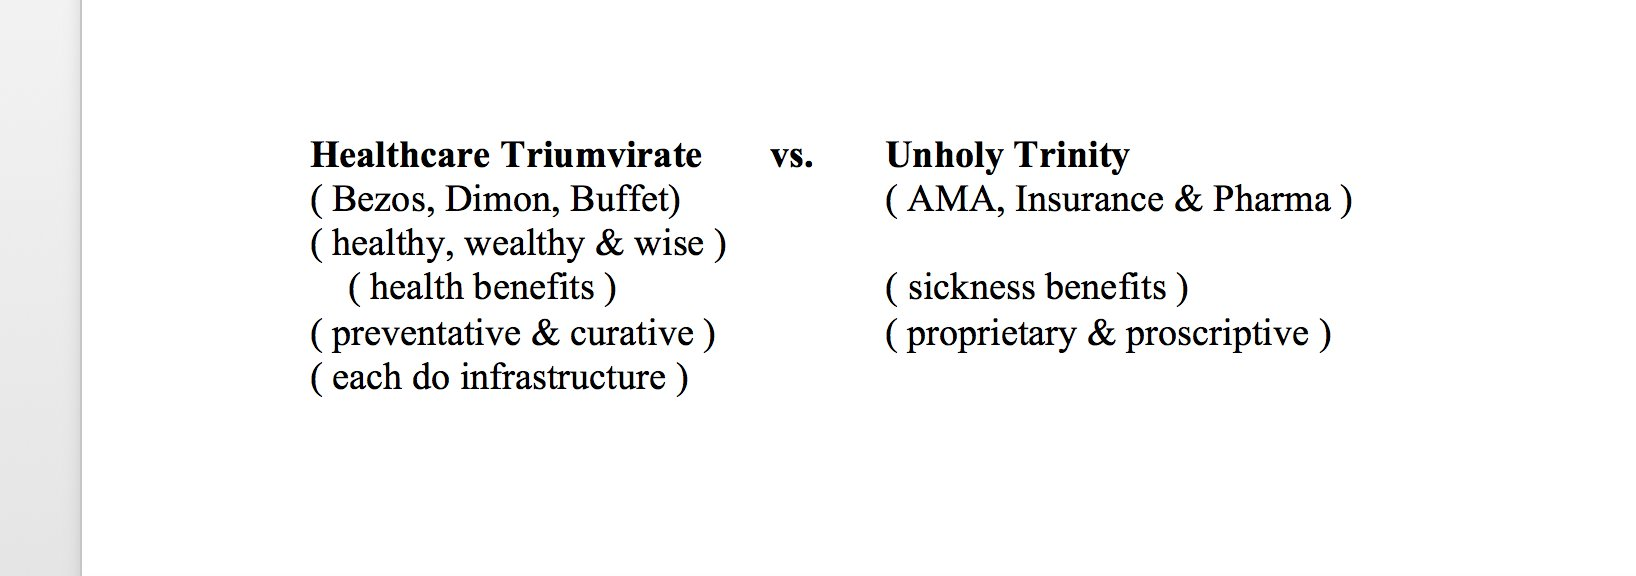 @chrissyfarr @CNBC Interoperability of sickness data is the wrong issue. Health is the correct issue. Seems to me. Which body inputs affect body outputs. If someone collected them, internally then externally, and called it health benefits at the end, who would notice? https://t.co/08zoVGh8in